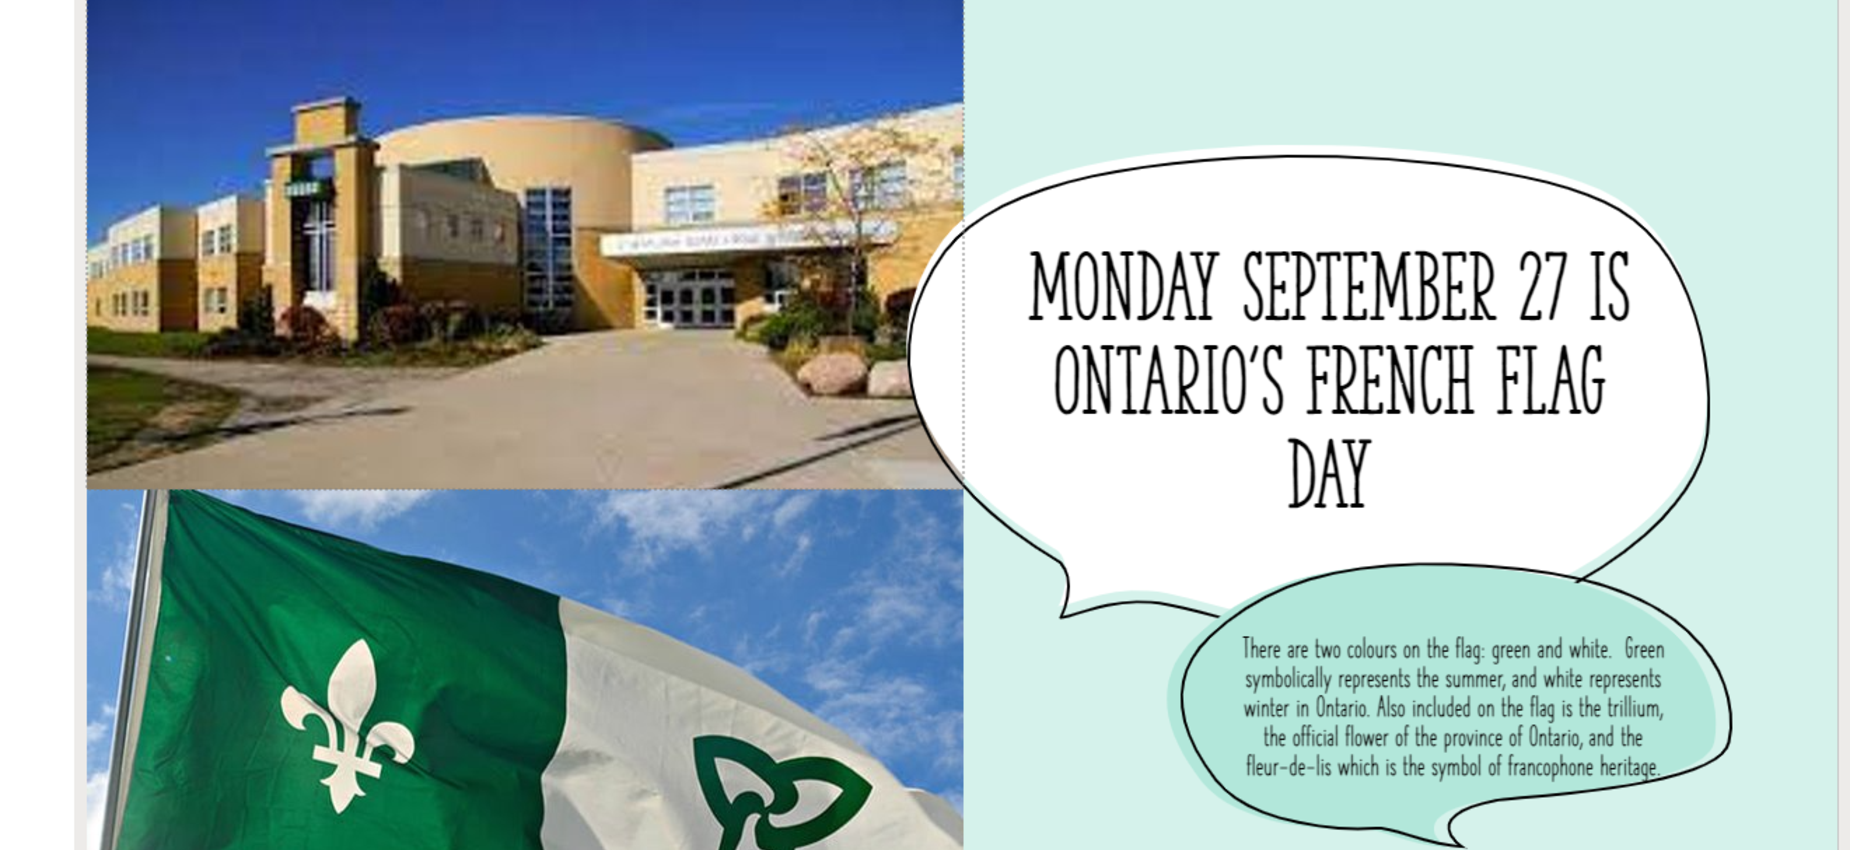 Monday at SMHS we will raise the Ontario French Flag